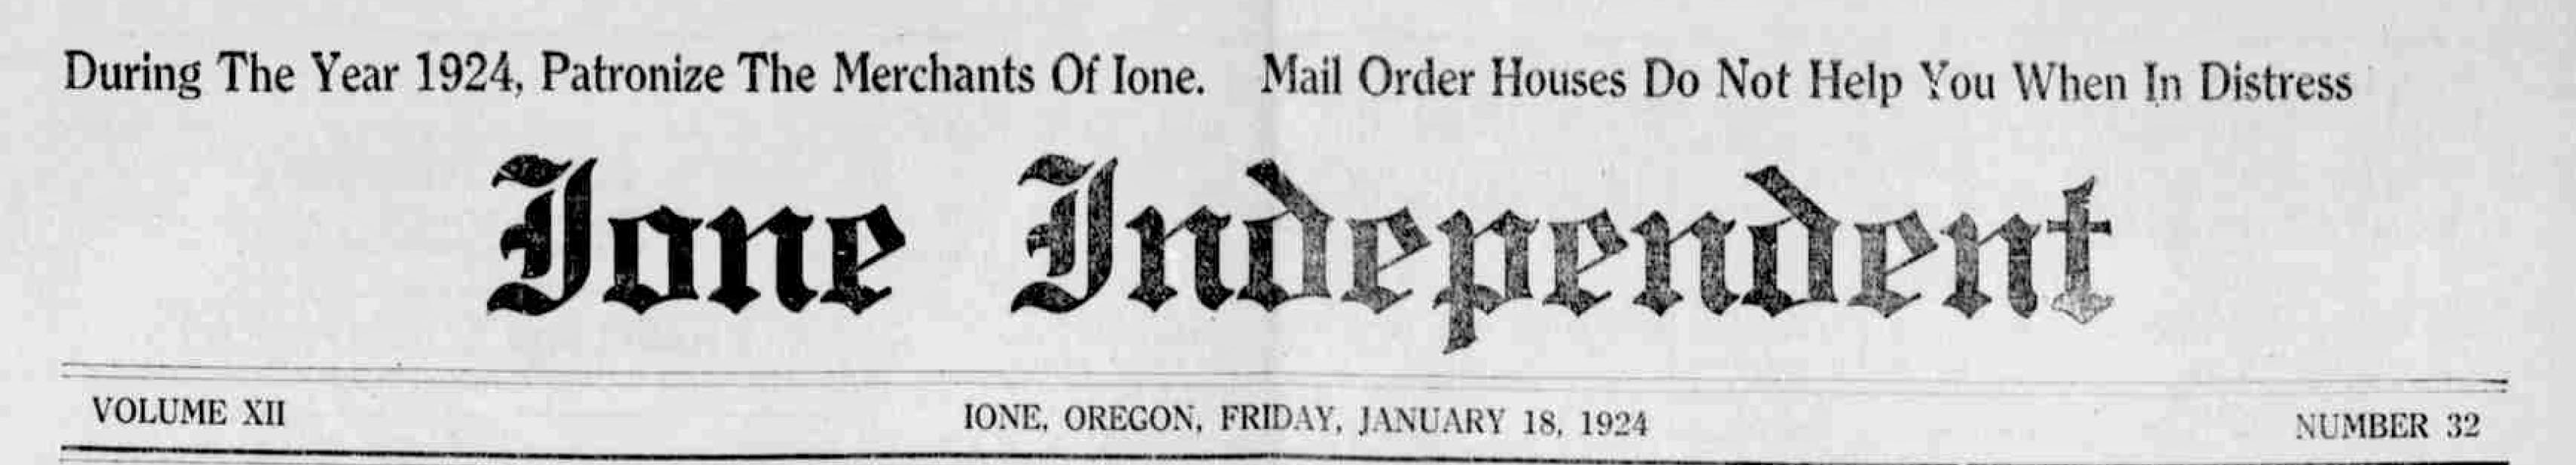 Ione independent. (Ione, Or.) January 18, 1924. Image 1. http://oregonnews.uoregon.edu/lccn/sn97071039/1924-01-18/ed-1/seq-1/